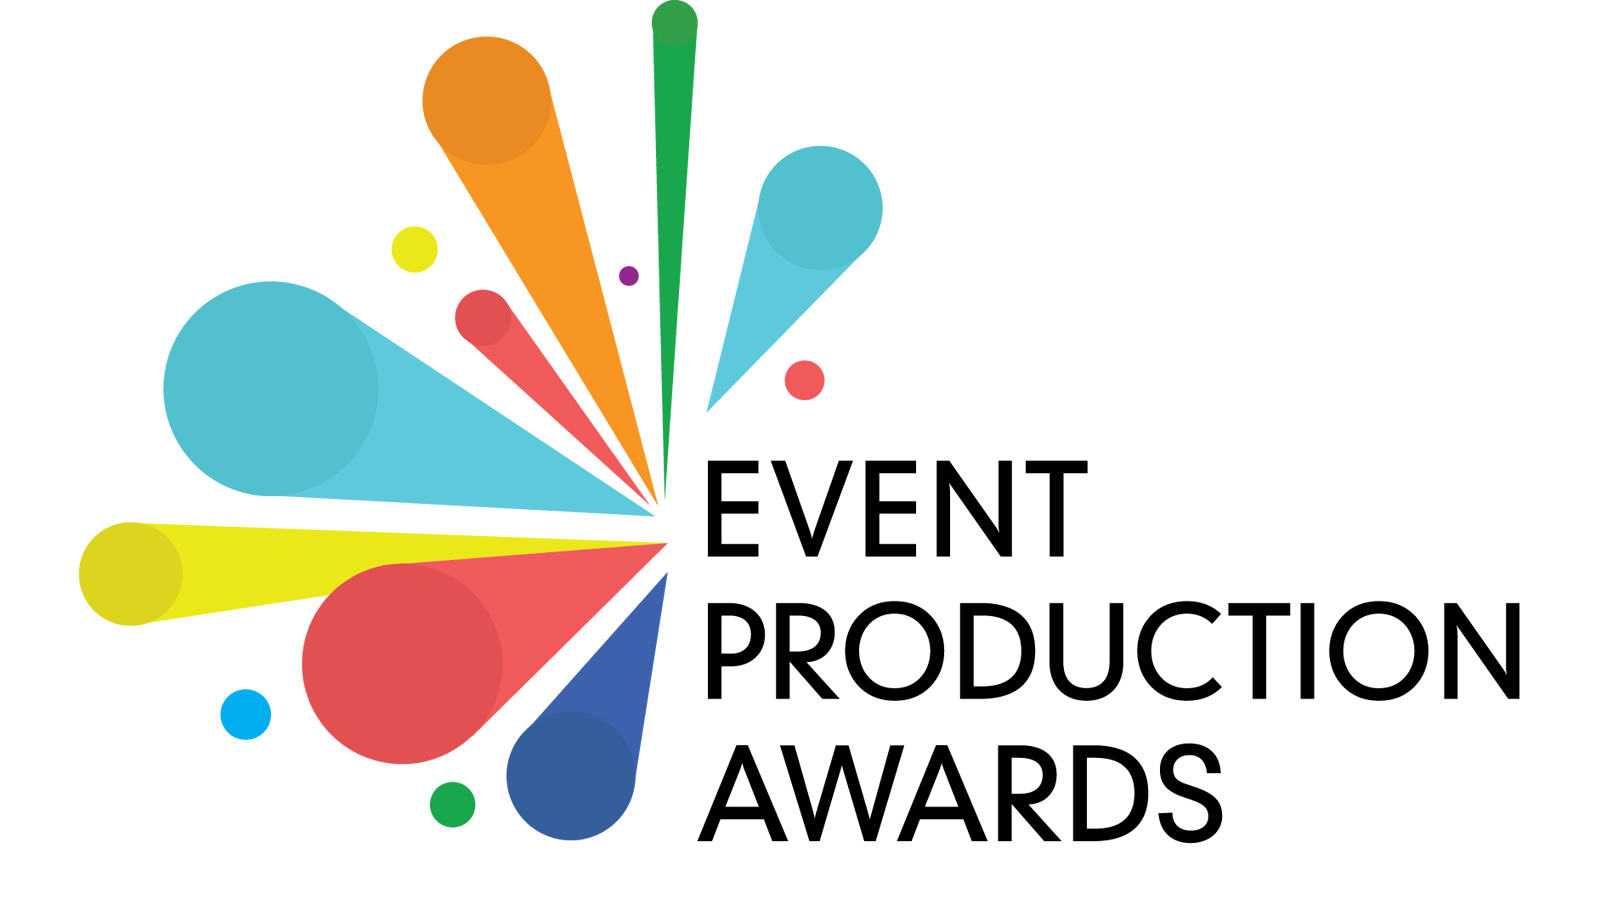 Tour of Britain Event Production Awards Sporting Event of the Year